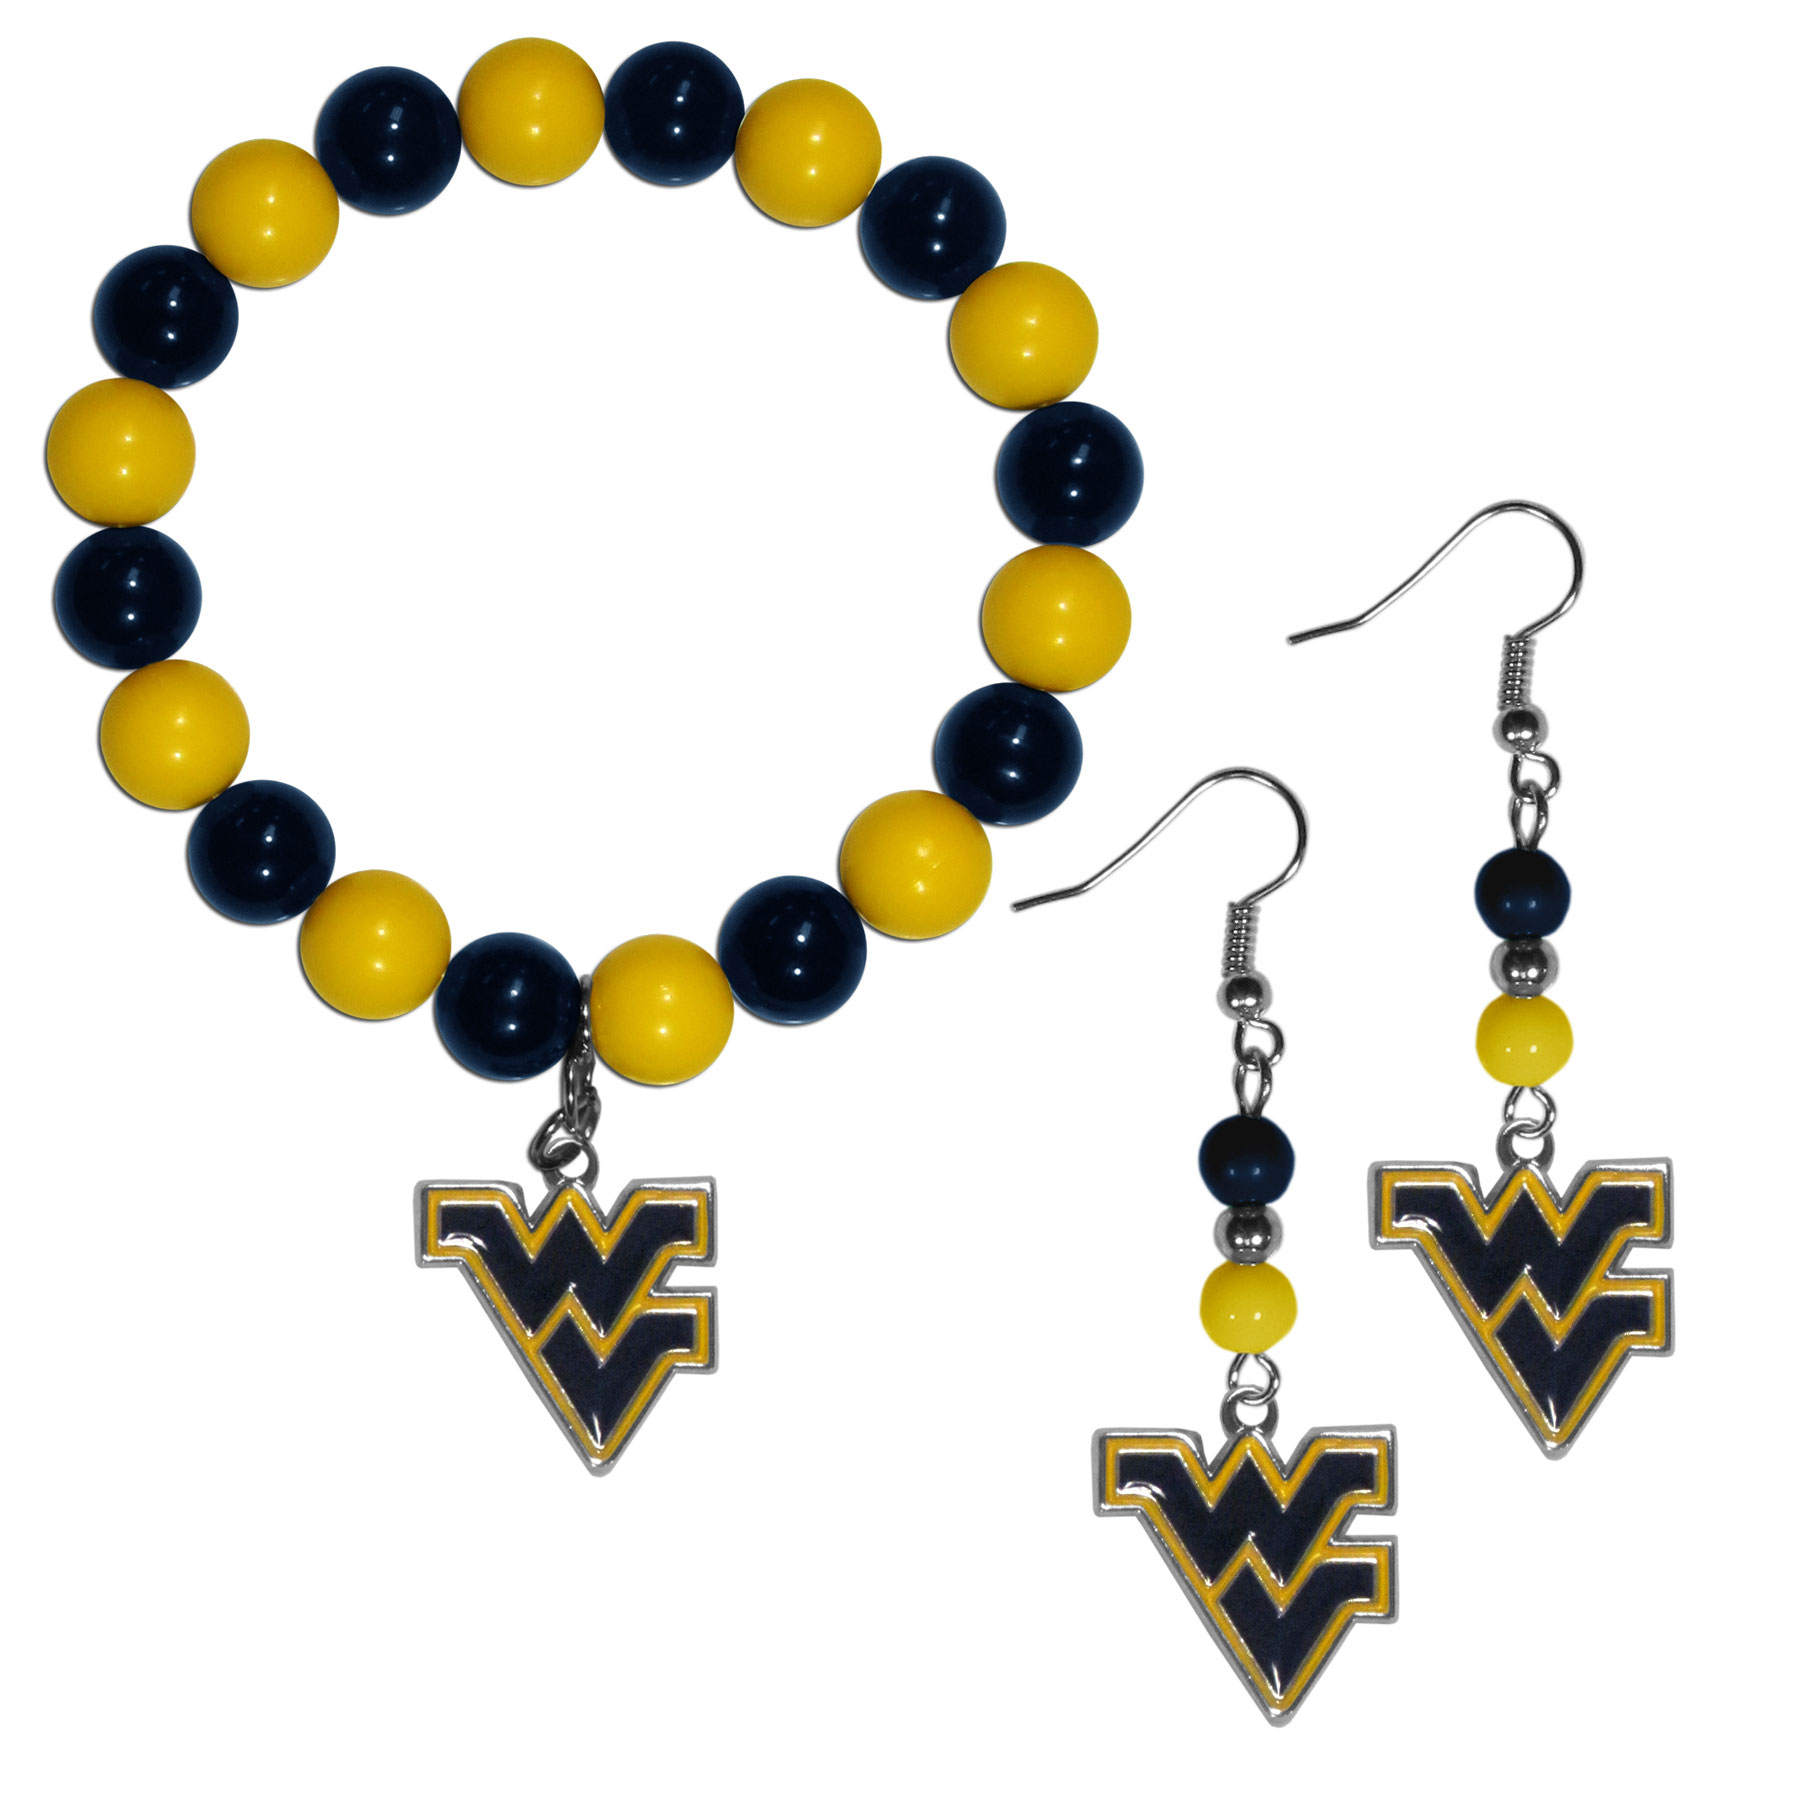 W. Virginia Mountaineers Fan Bead Earrings and Bracelet Set - This fun and colorful W. Virginia Mountaineers fan bead jewelry set is fun and casual with eye-catching beads in bright team colors. The fashionable dangle earrings feature a team colored beads that drop down to a carved and enameled charm. The stretch bracelet has larger matching beads that make a striking statement and have a matching team charm. These sassy yet sporty jewelry pieces make a perfect gift for any female fan. Spice up your game-day outfit with these fun colorful earrings and bracelet that are also cute enough for any day.